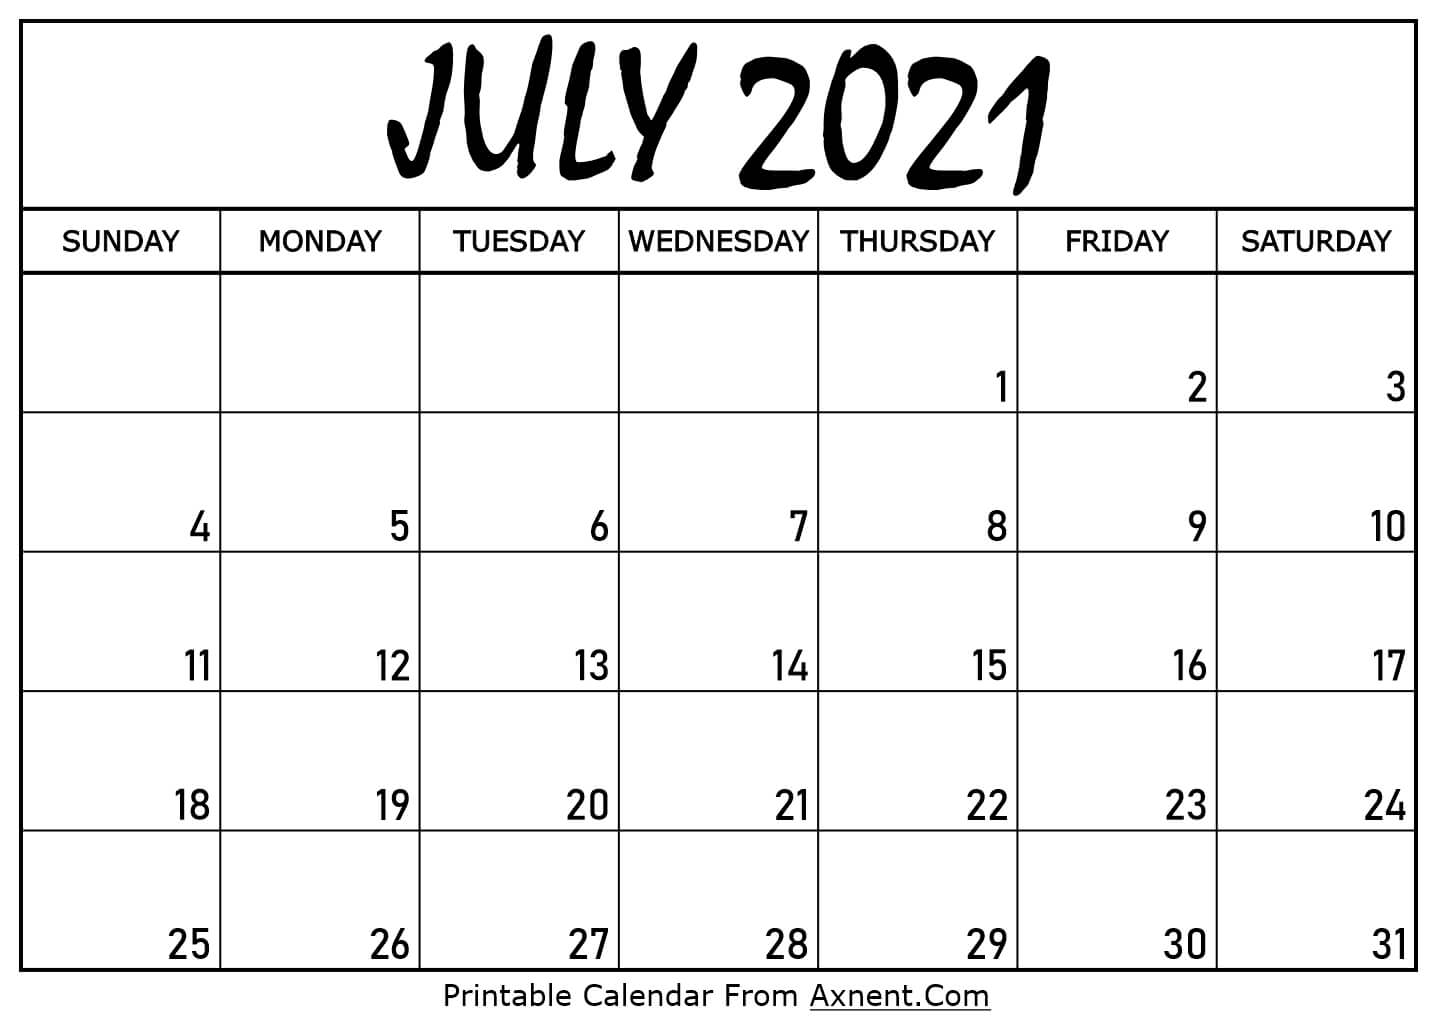 Printable July 2021 Calendar Template - Time Management ...